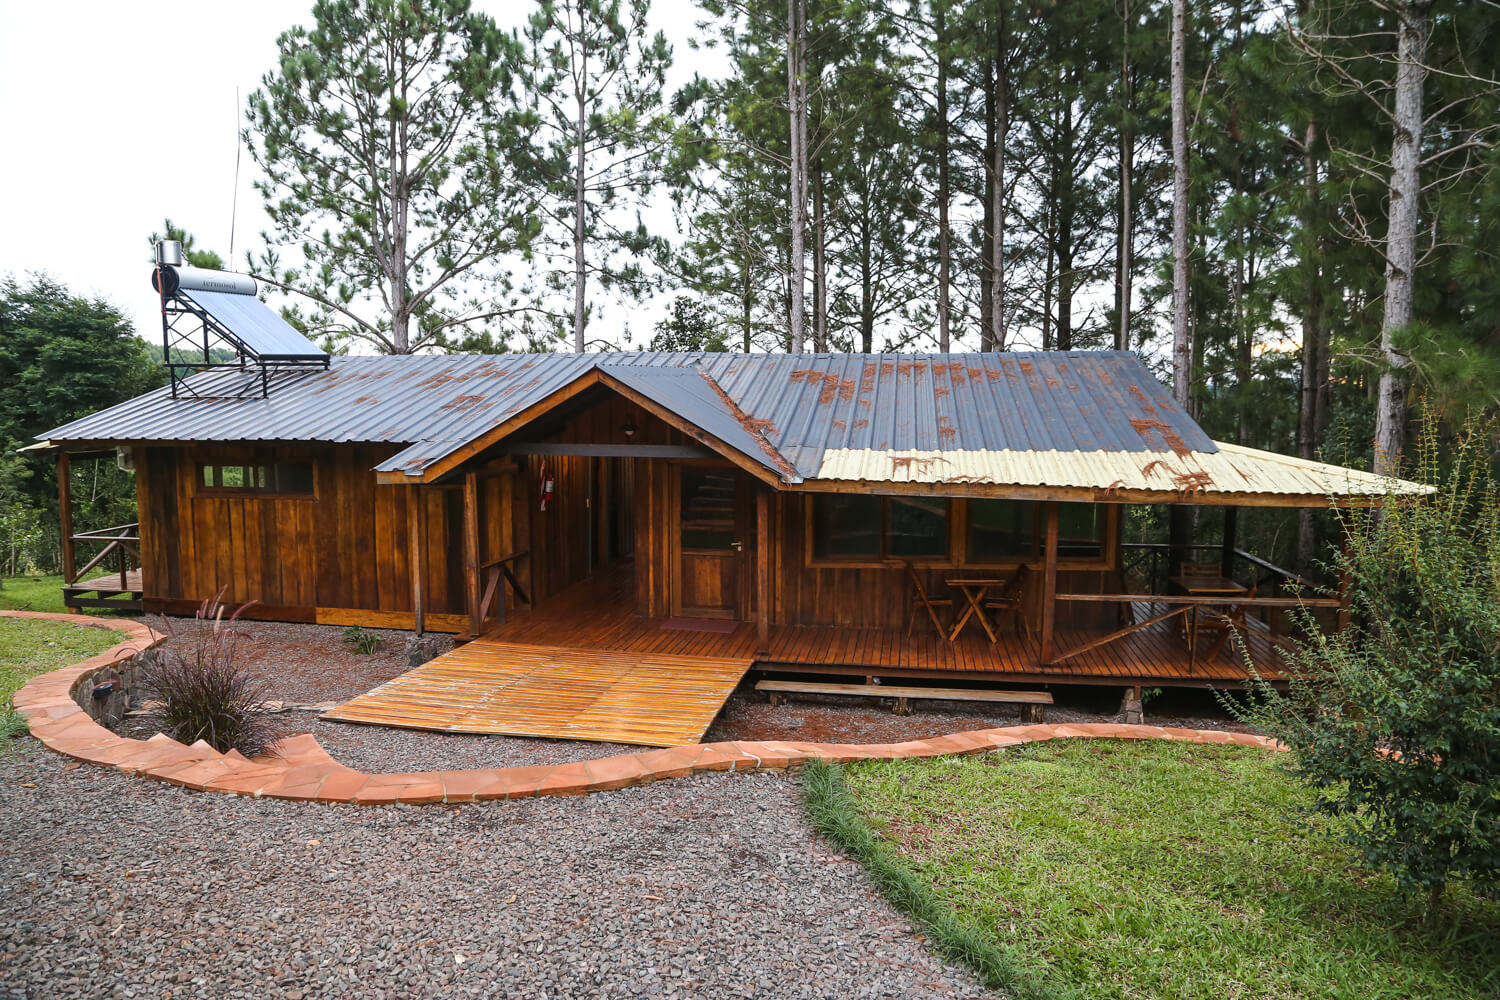 A log cabin in a jungle on a Misiones Northeast Argentina road trip